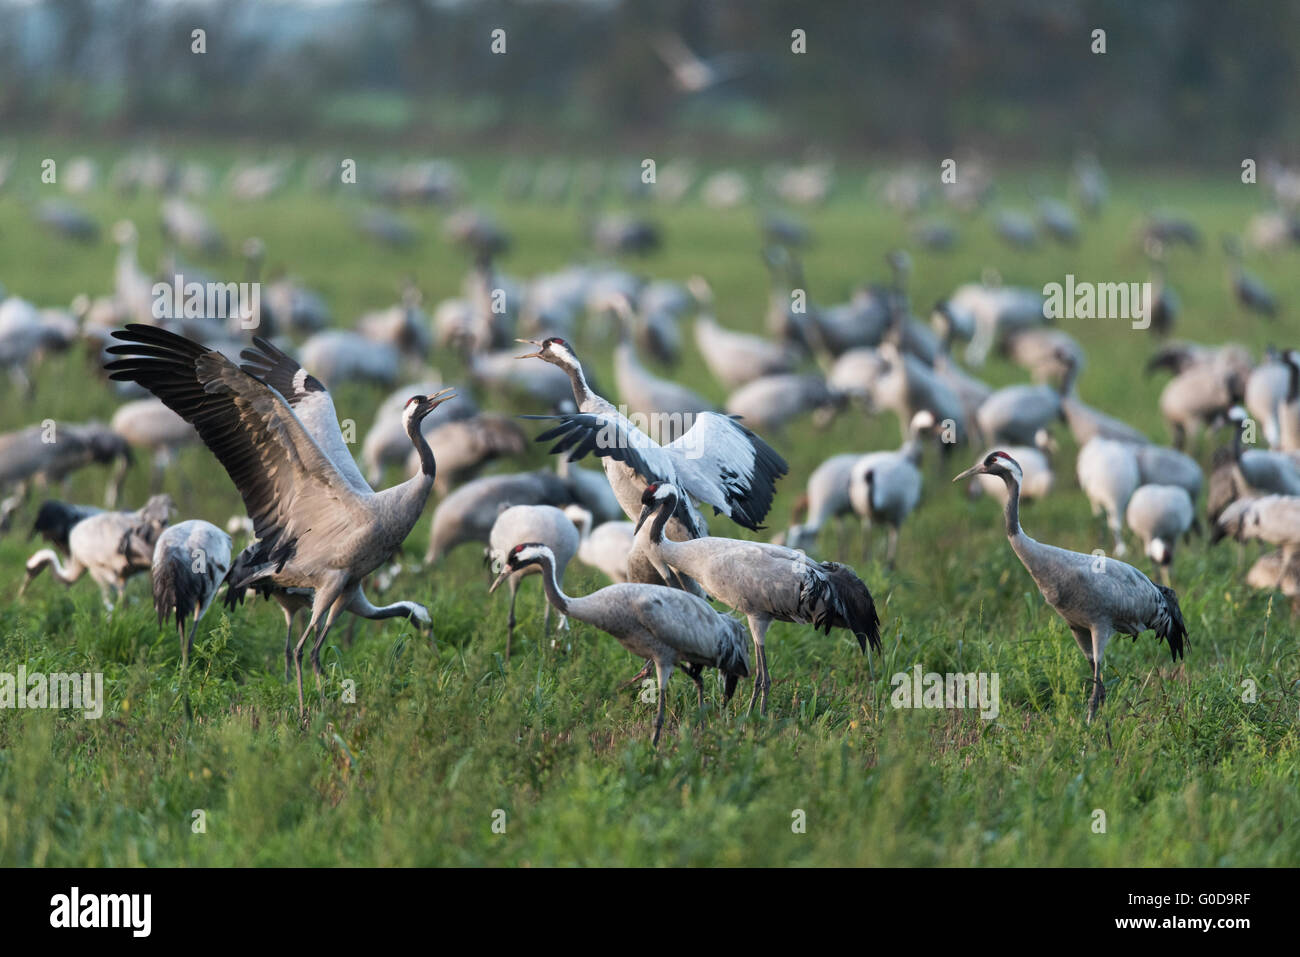 Common cranes from Germany Stock Photo